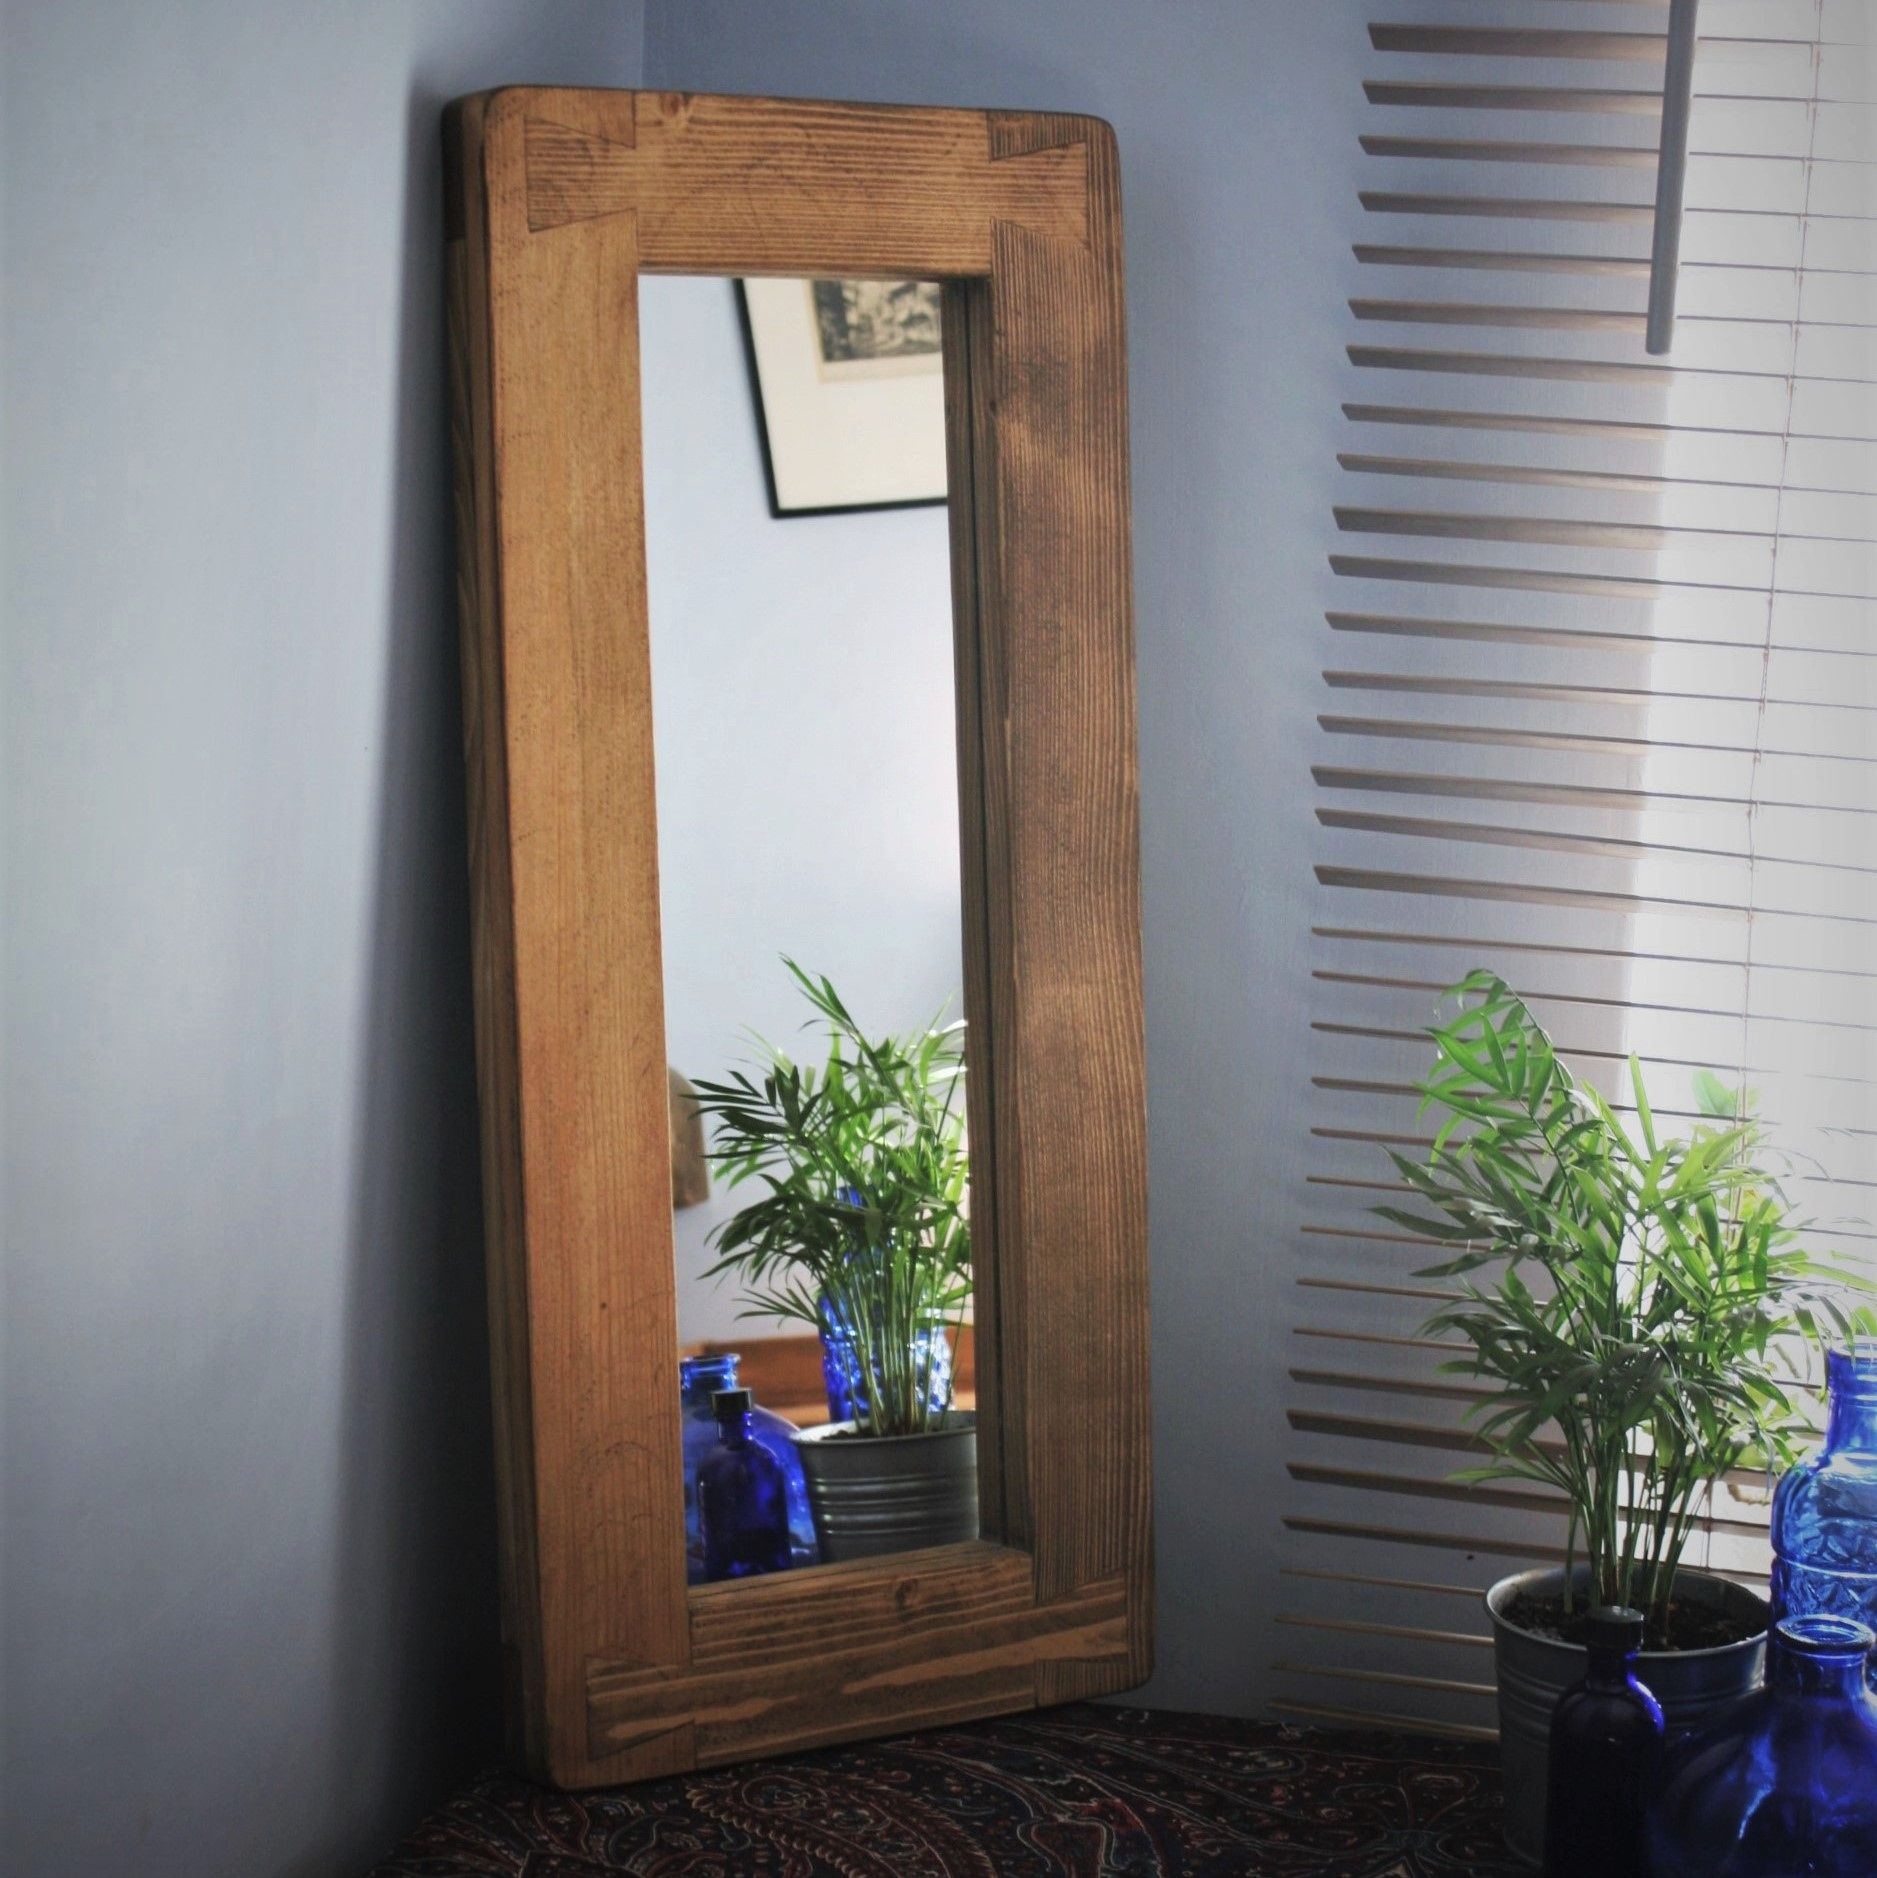 Pin On Natural Wooden Framed Mirrors Handmade Rustic Simplicity From Somerset Uk